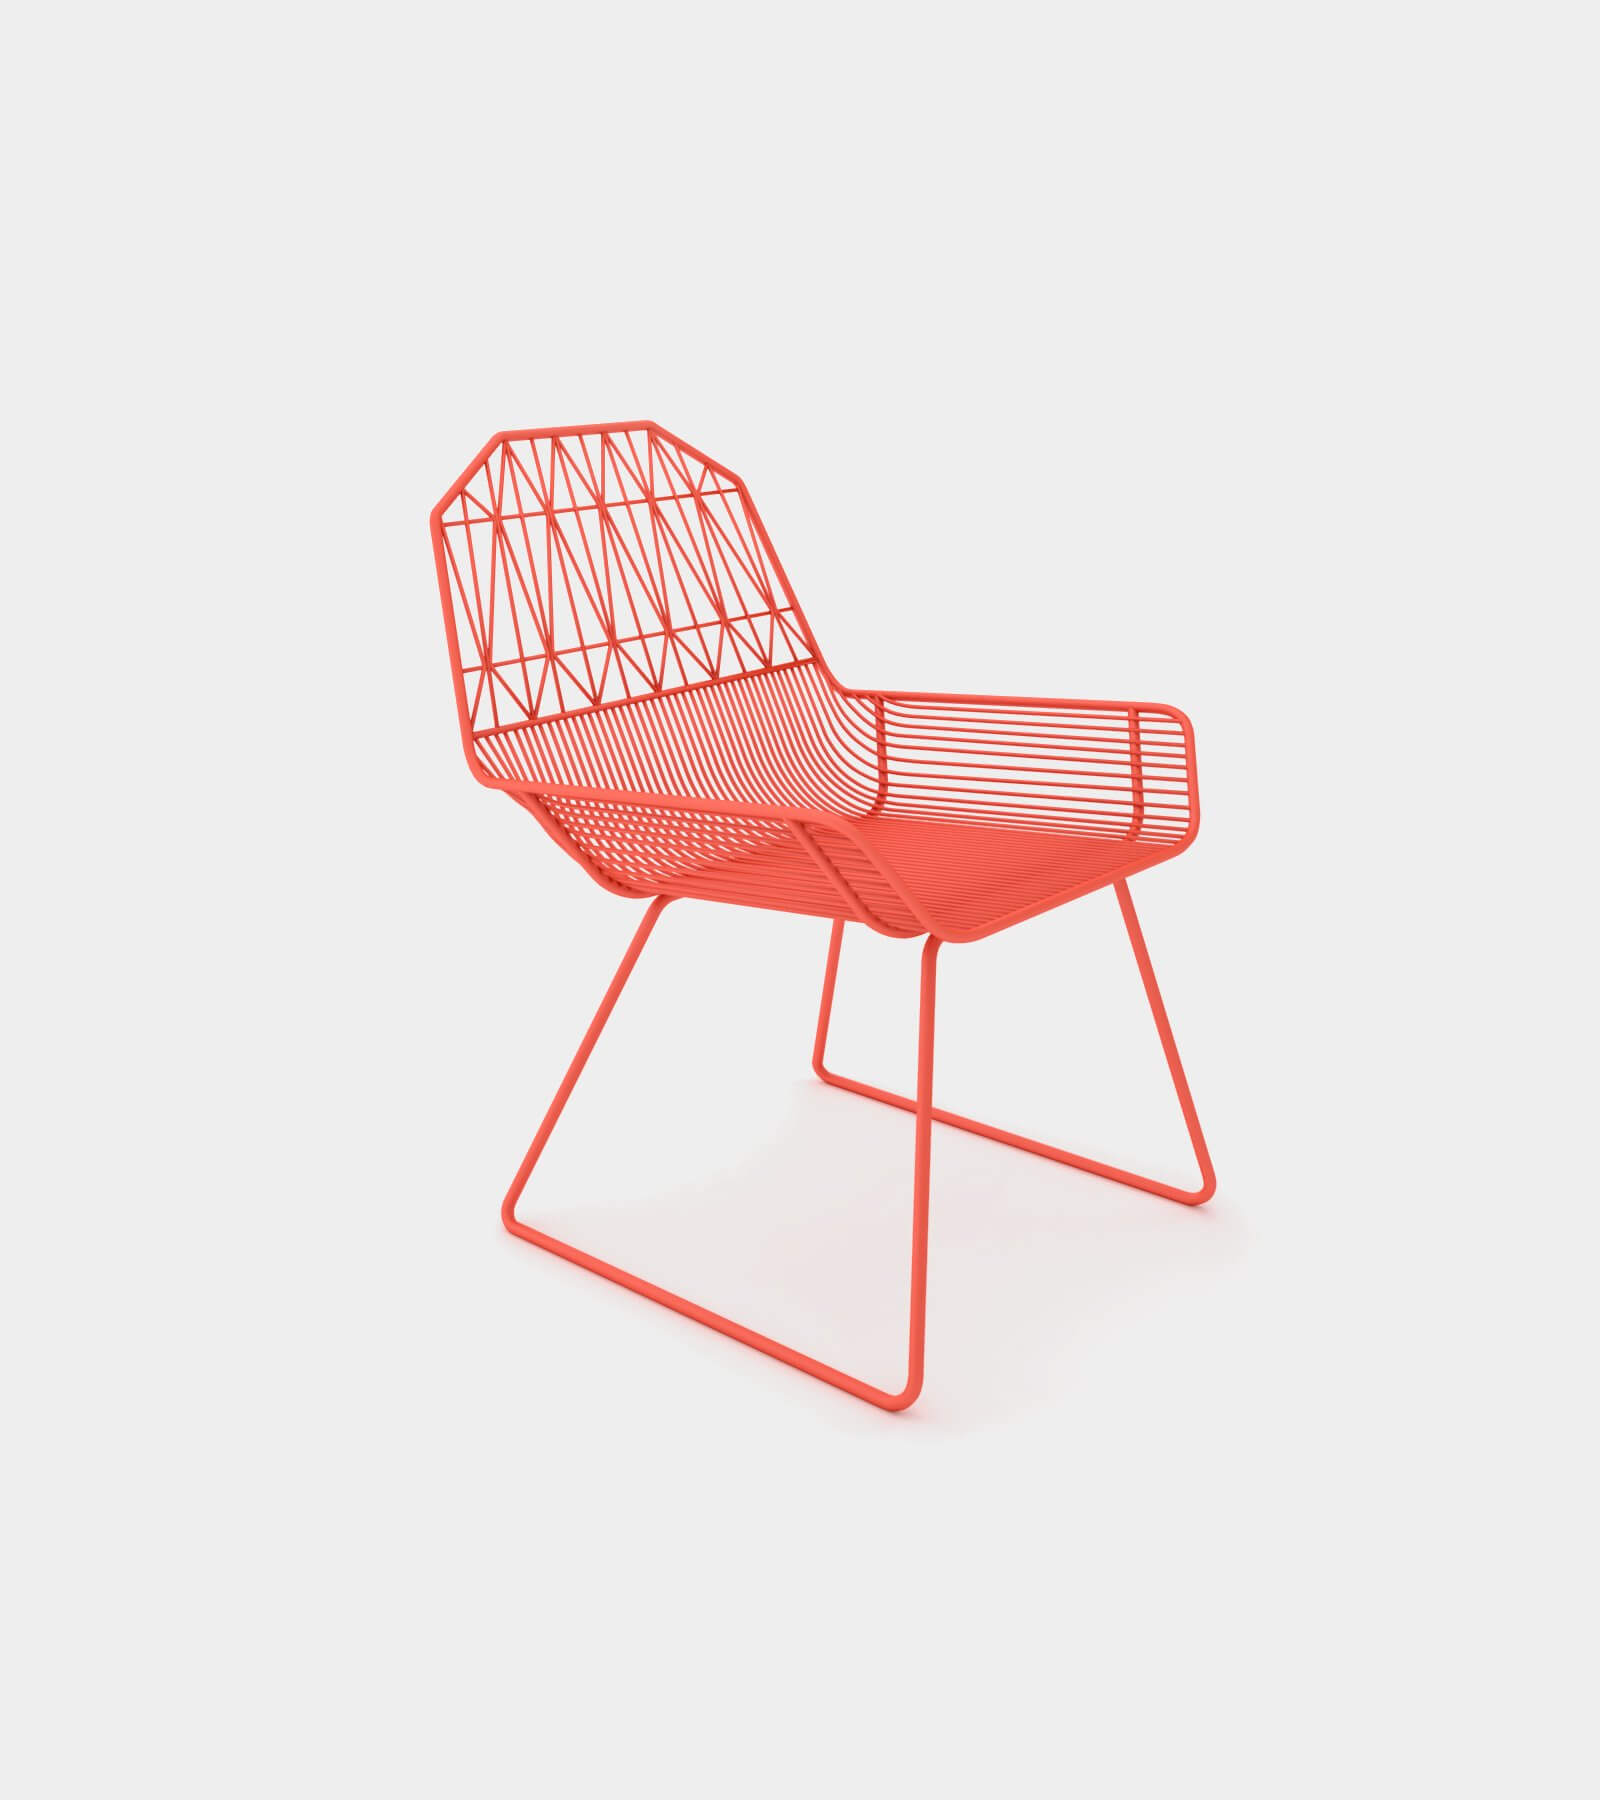 Modern outdoor & indoor lounge chair 1- 3D Model